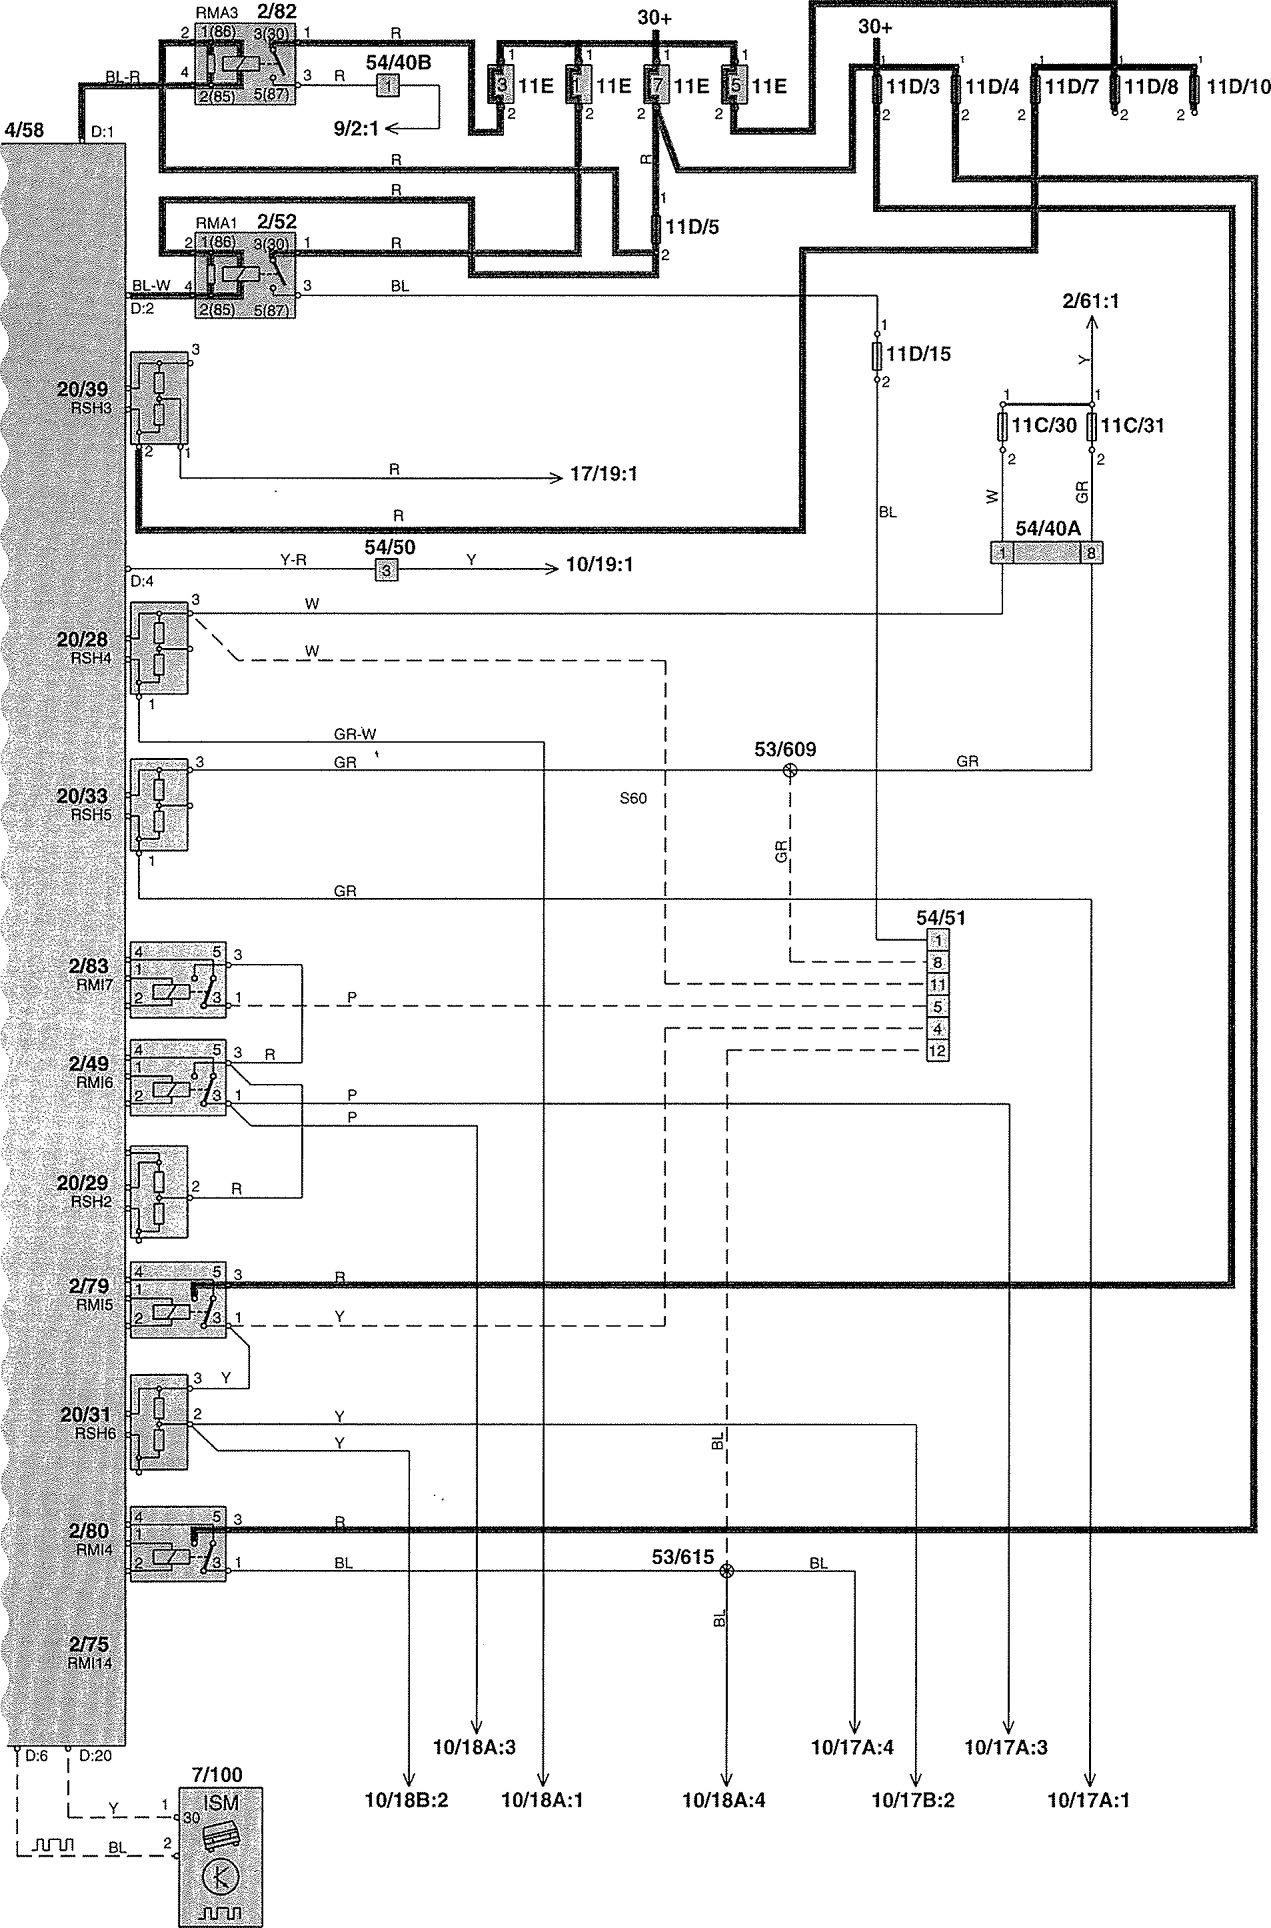 Volvo V70 Xc Wiring Diagram Library Electrical 2002 Cem Jeep Cherokee Door